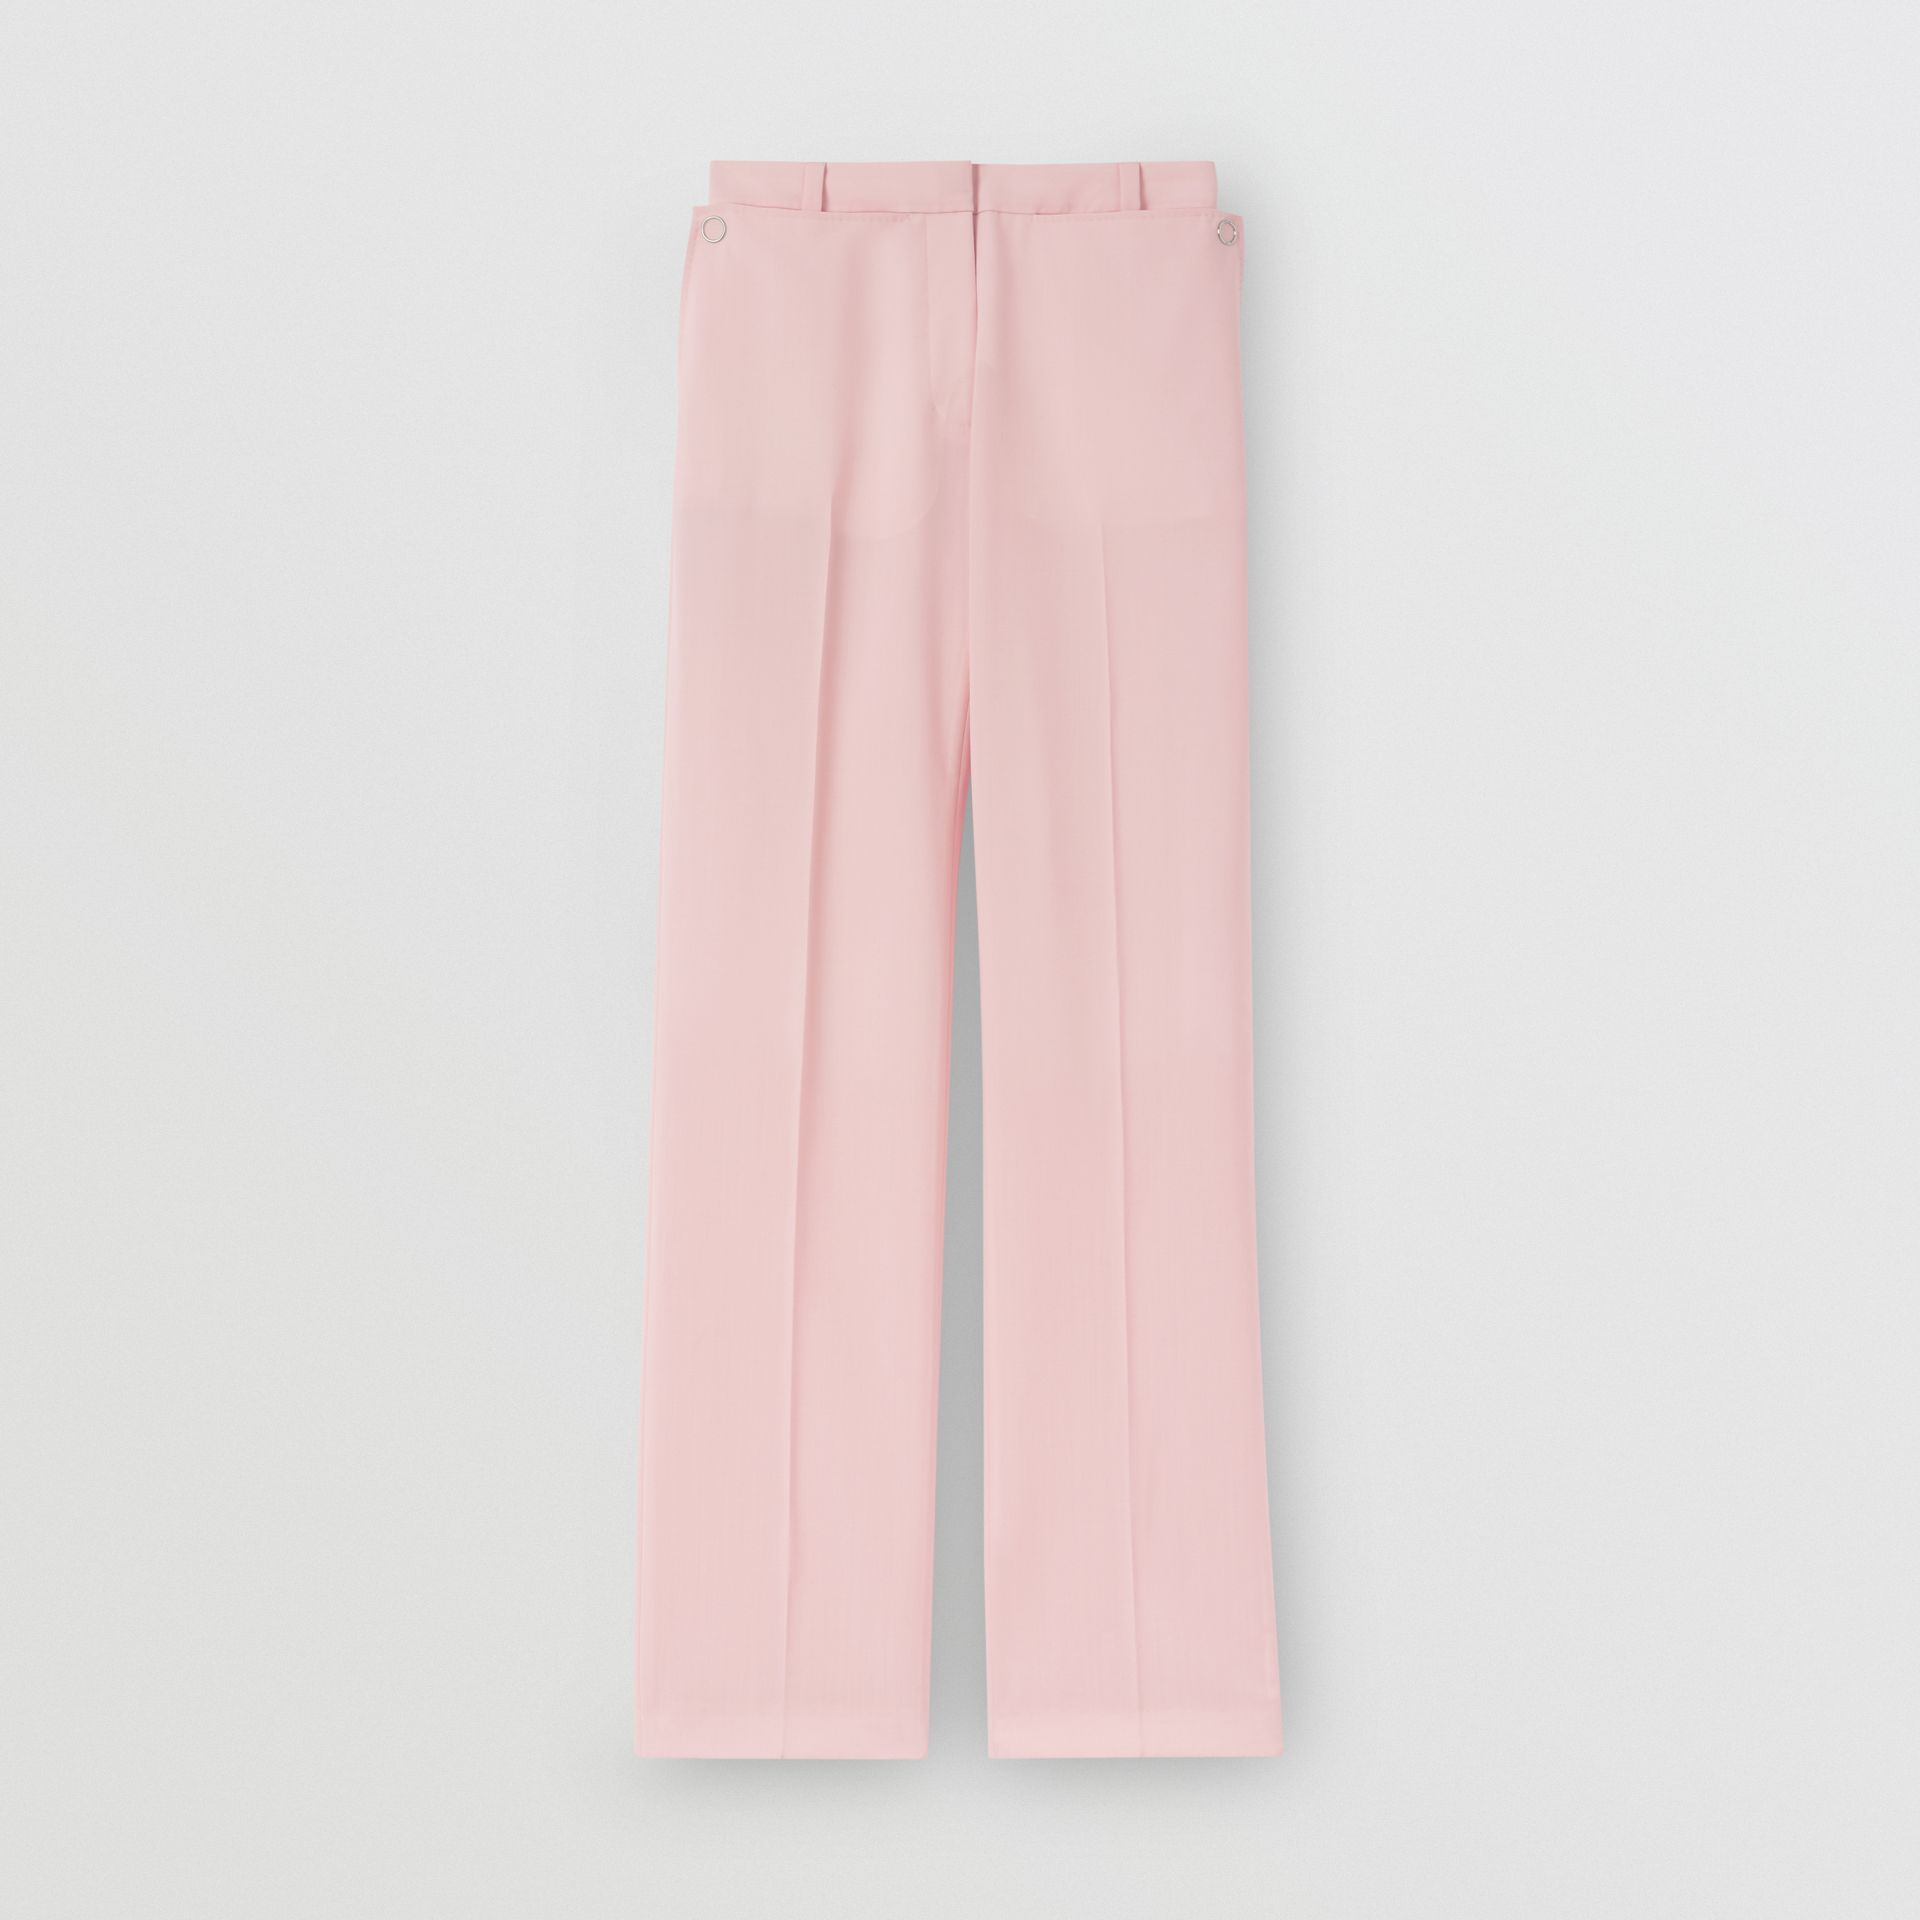 Pocket Detail Tumbled Wool Tailored Trousers in Soft Pink | Burberry United Kingdom - gallery image 3